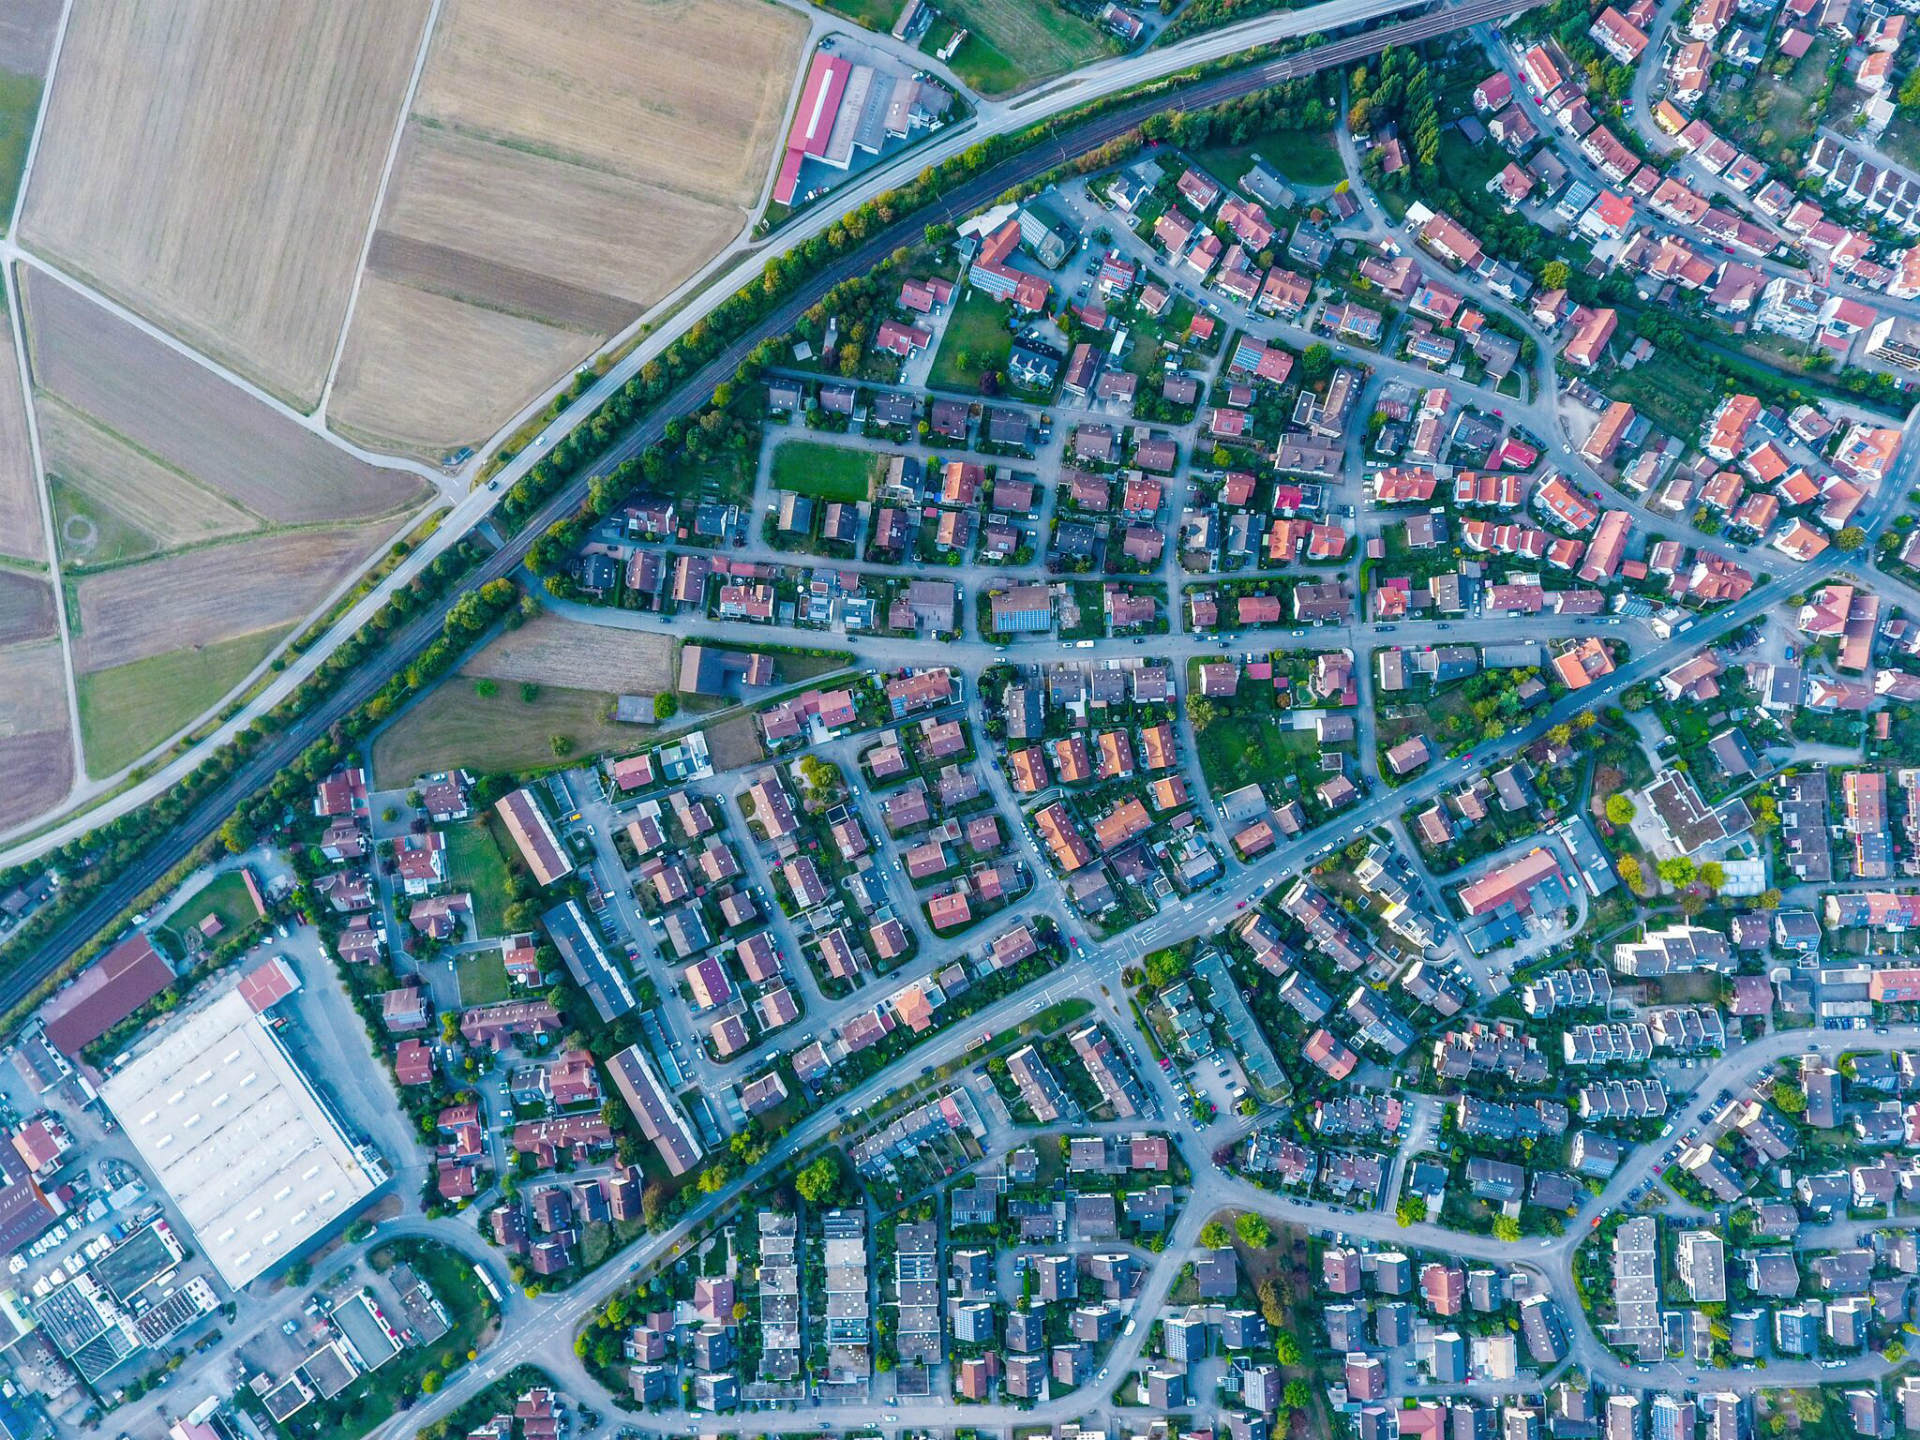 An area of suburban houses